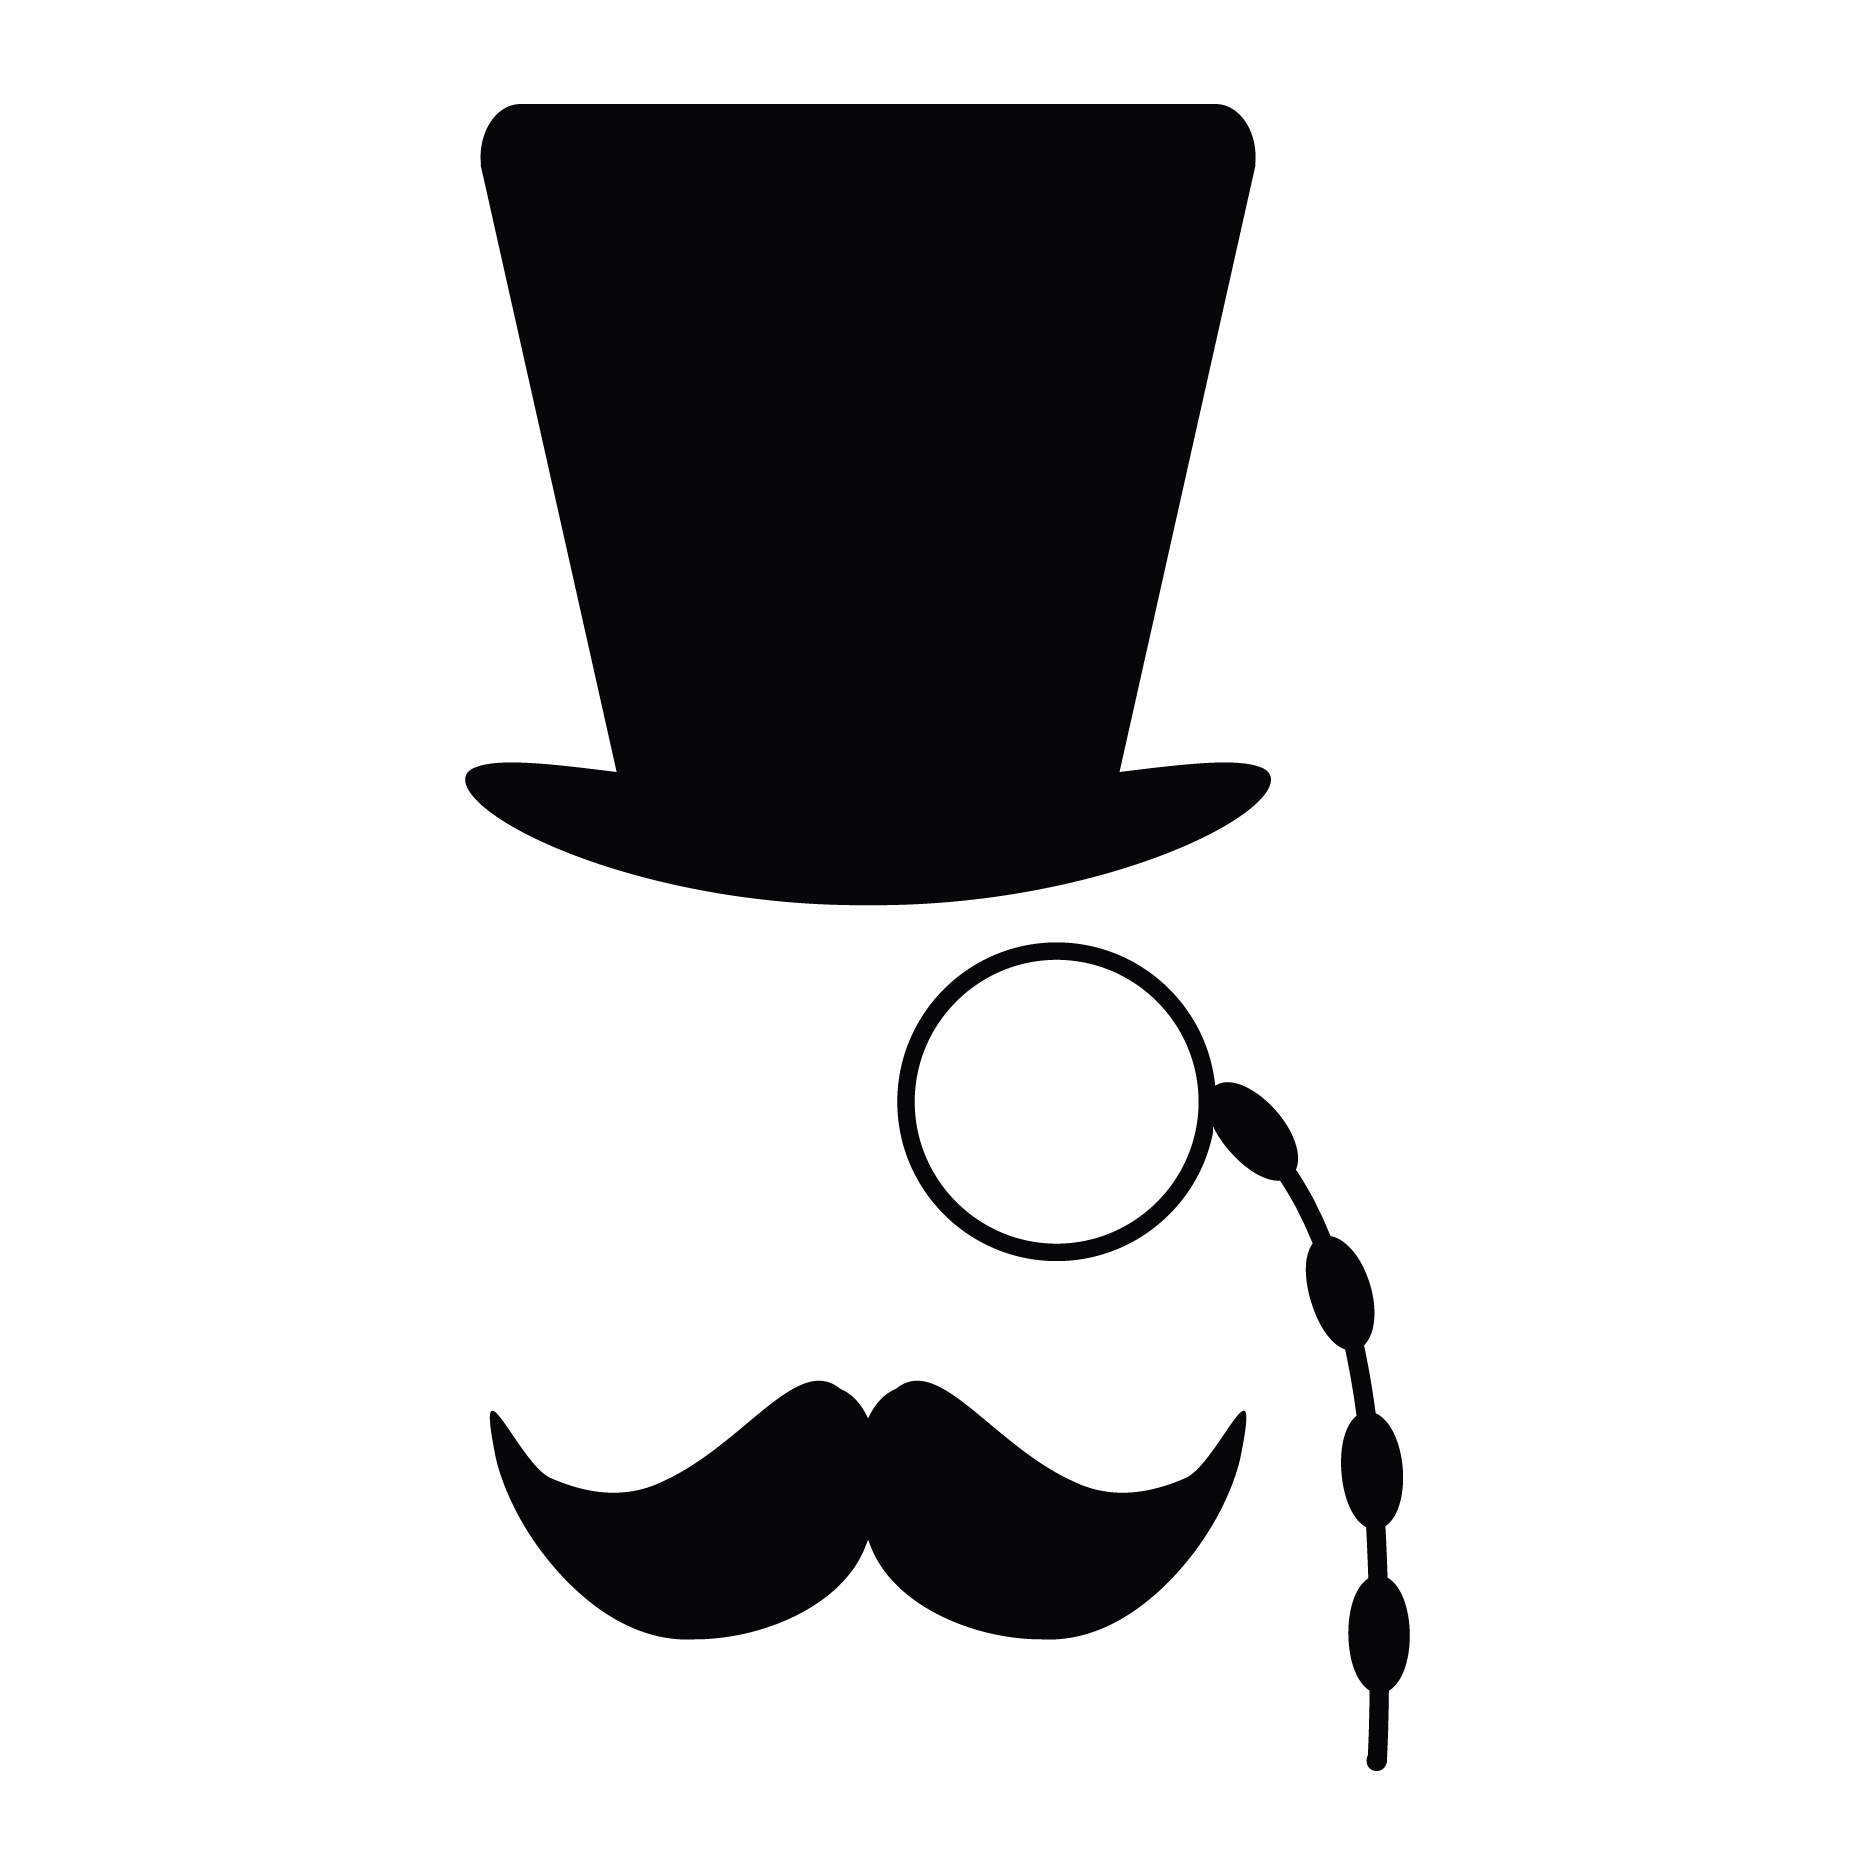 monocle gentleman wall quotes u2122 wall art decal